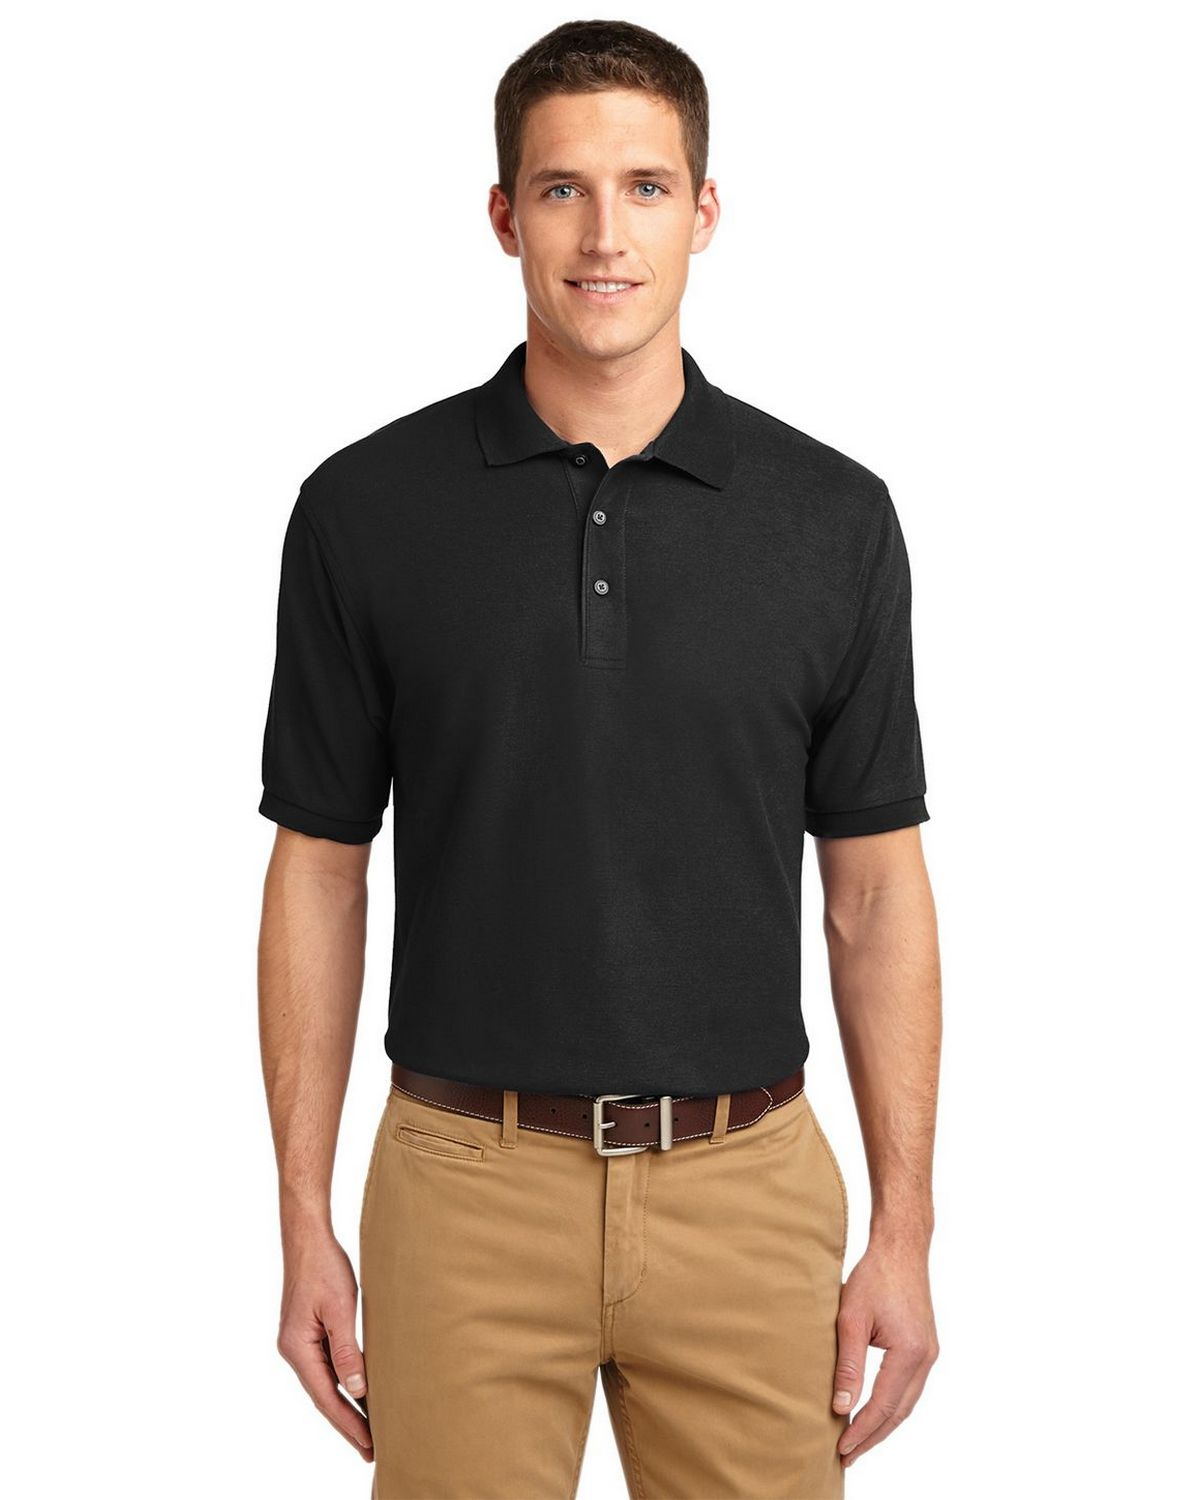 Port Authority K500 Men's Silk Touch Polo - Black - XS #silk